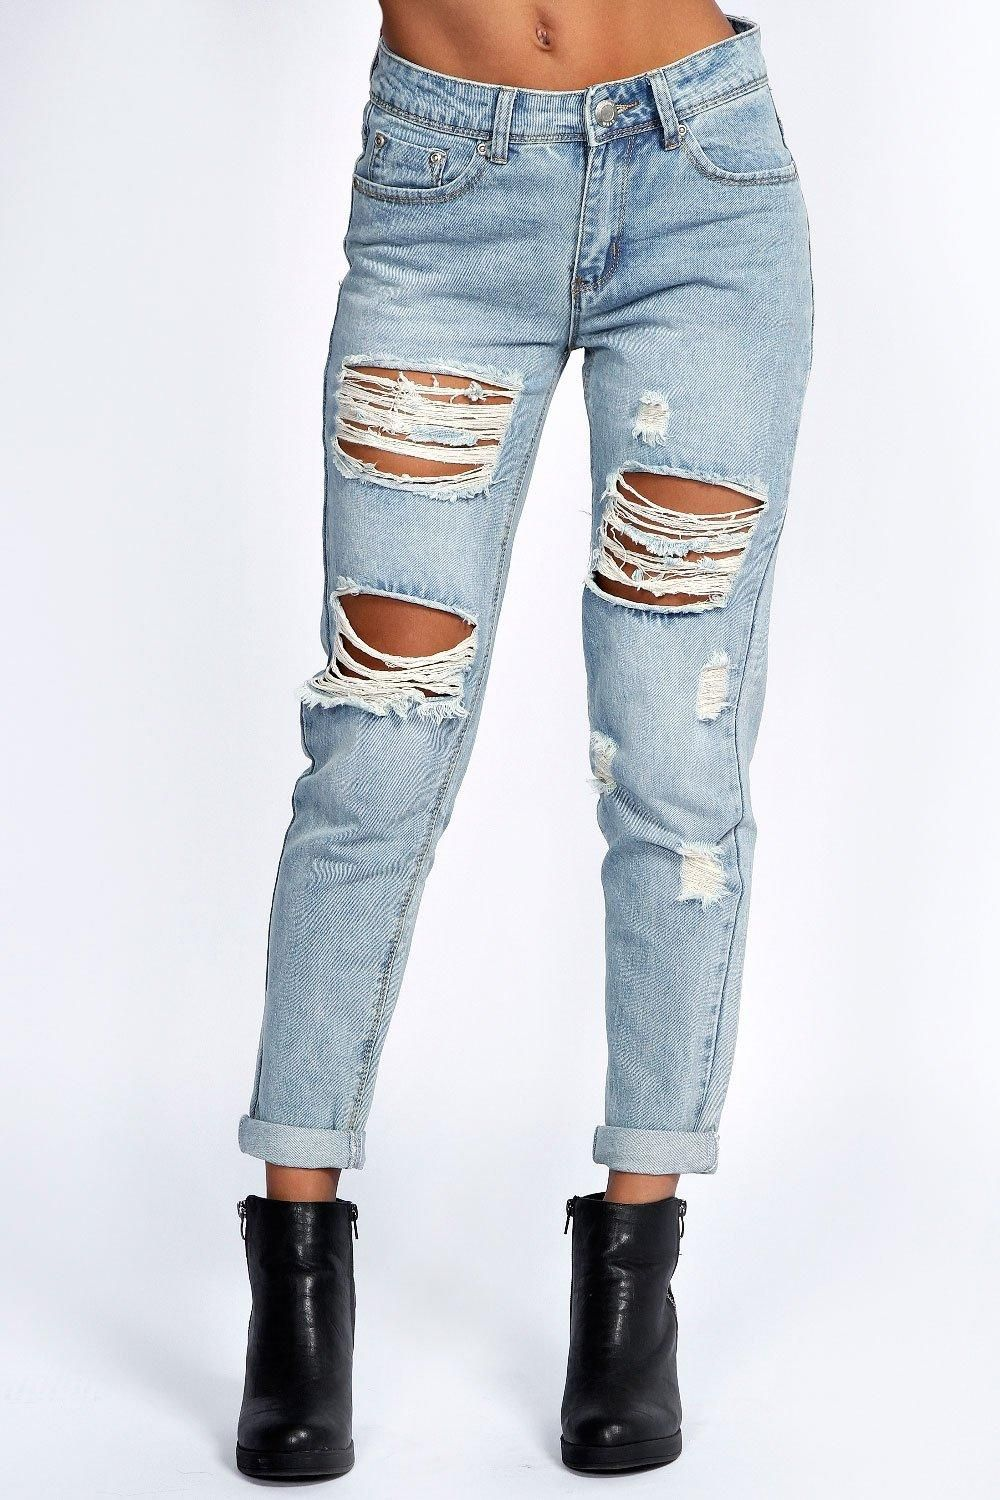 Mid Rise All Over Ripped Boyfriend Jeans Boohoo Uk In 2021 Womens Ripped Jeans Diy Ripped Jeans Boyfriend Jeans